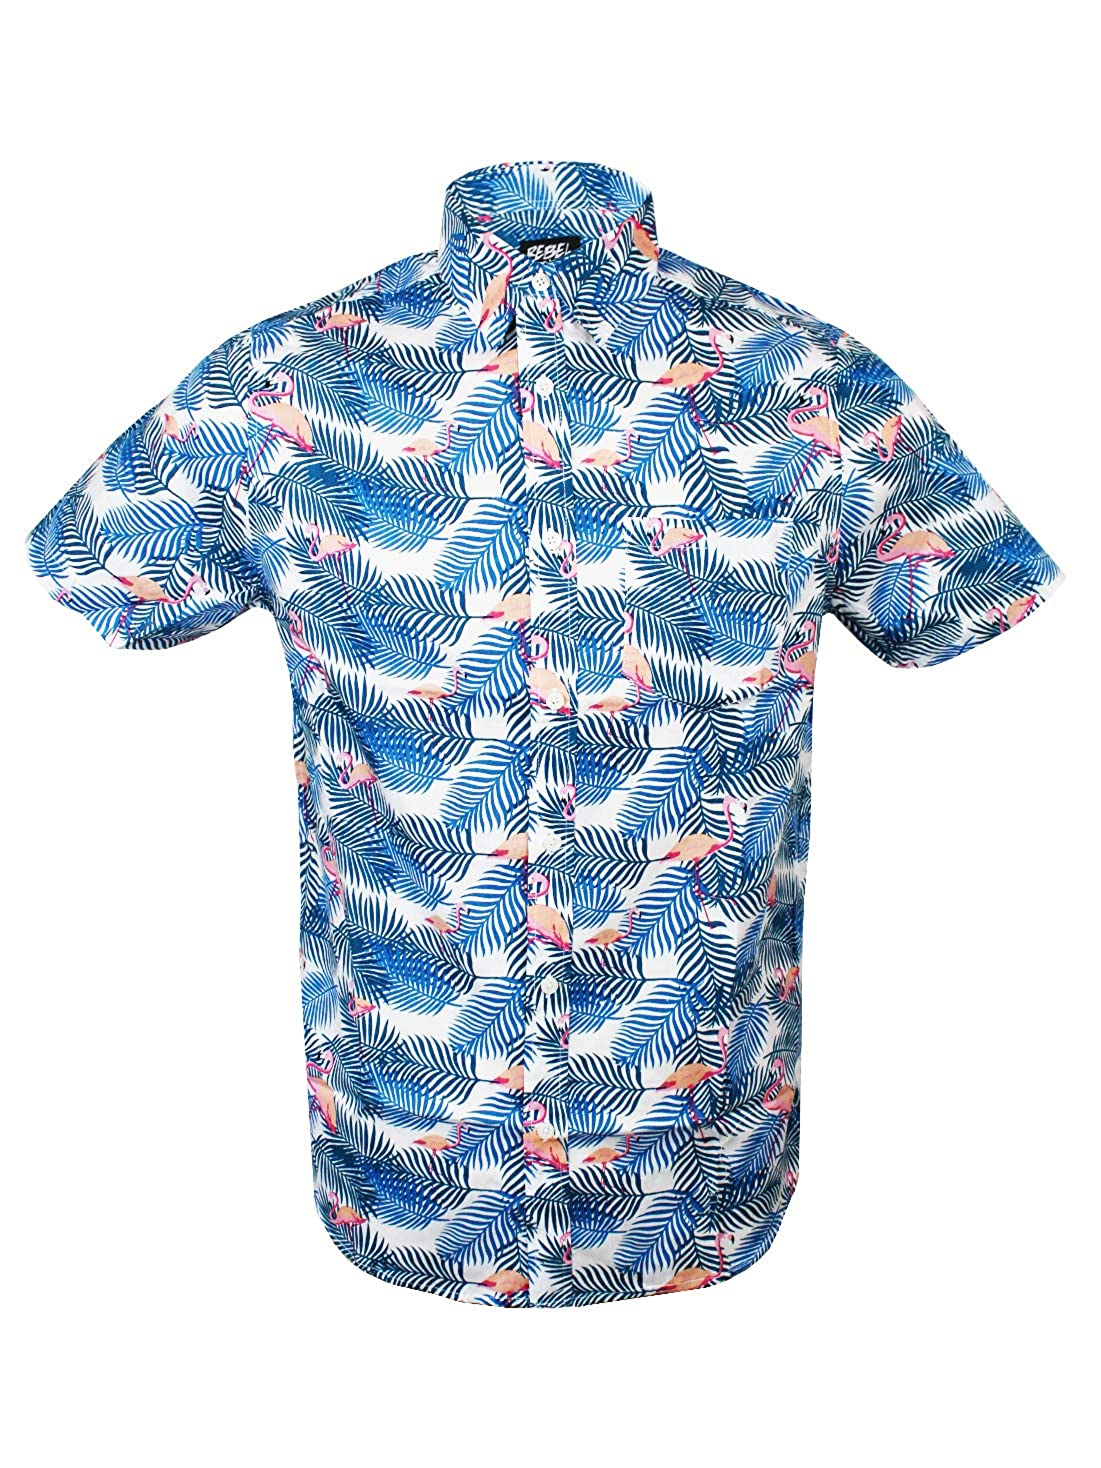 Rebel Star Mens Slim Fit Short Sleeve Casual Shirt Hawaiian Aloha Beach Summer Flamingo Print